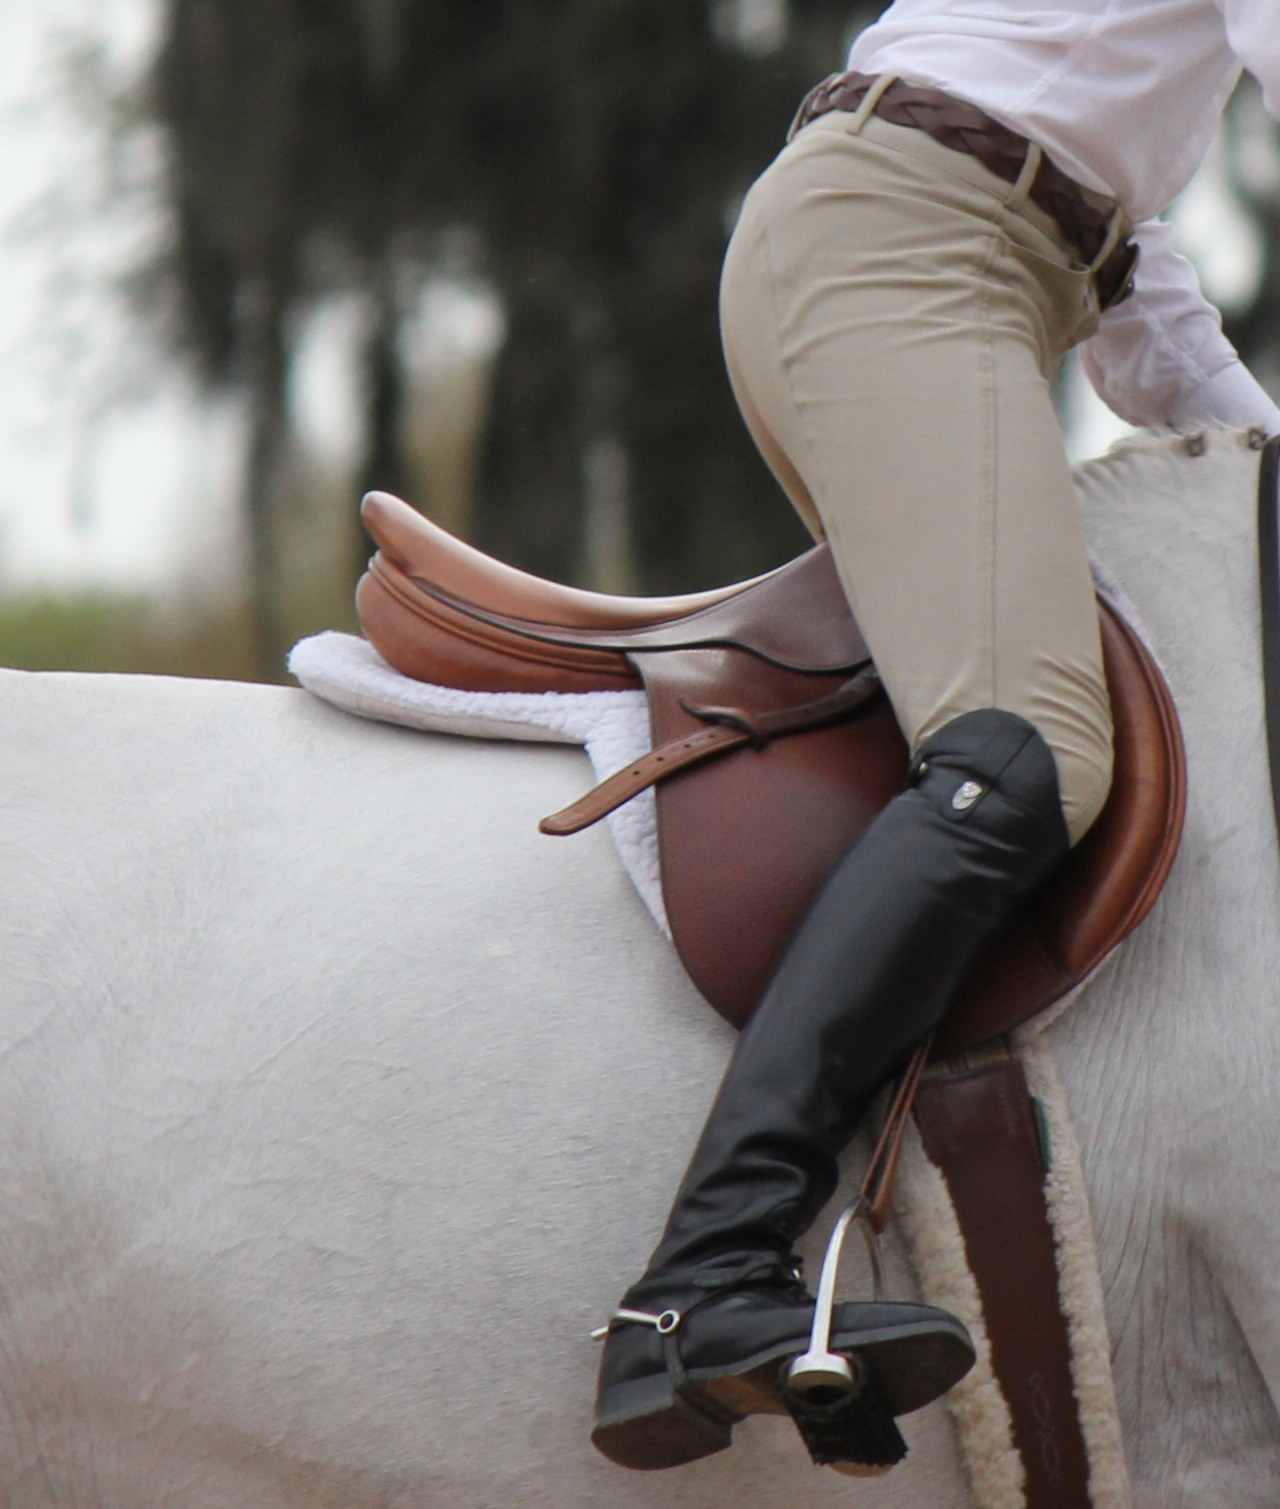 This saddle is amazing!